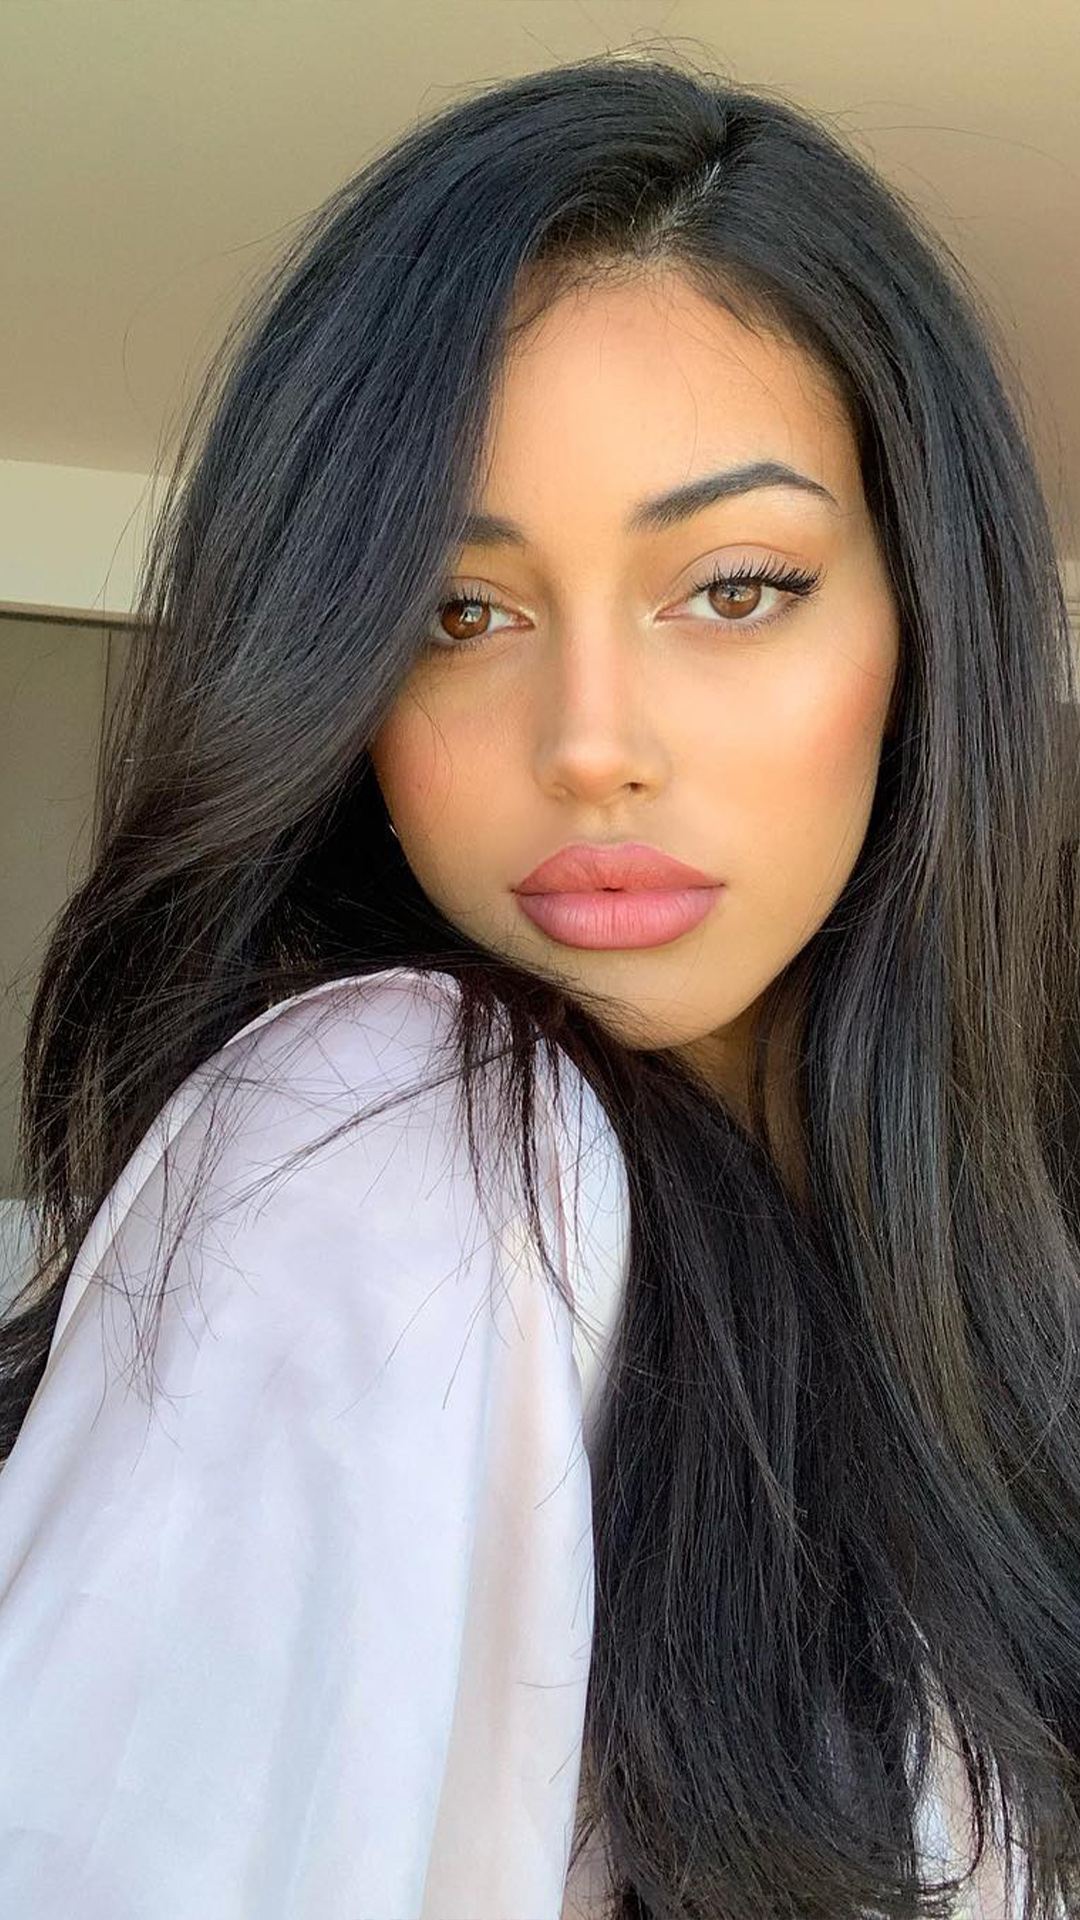 Cindy Kimberly Wallpapers Free Download for Mobile